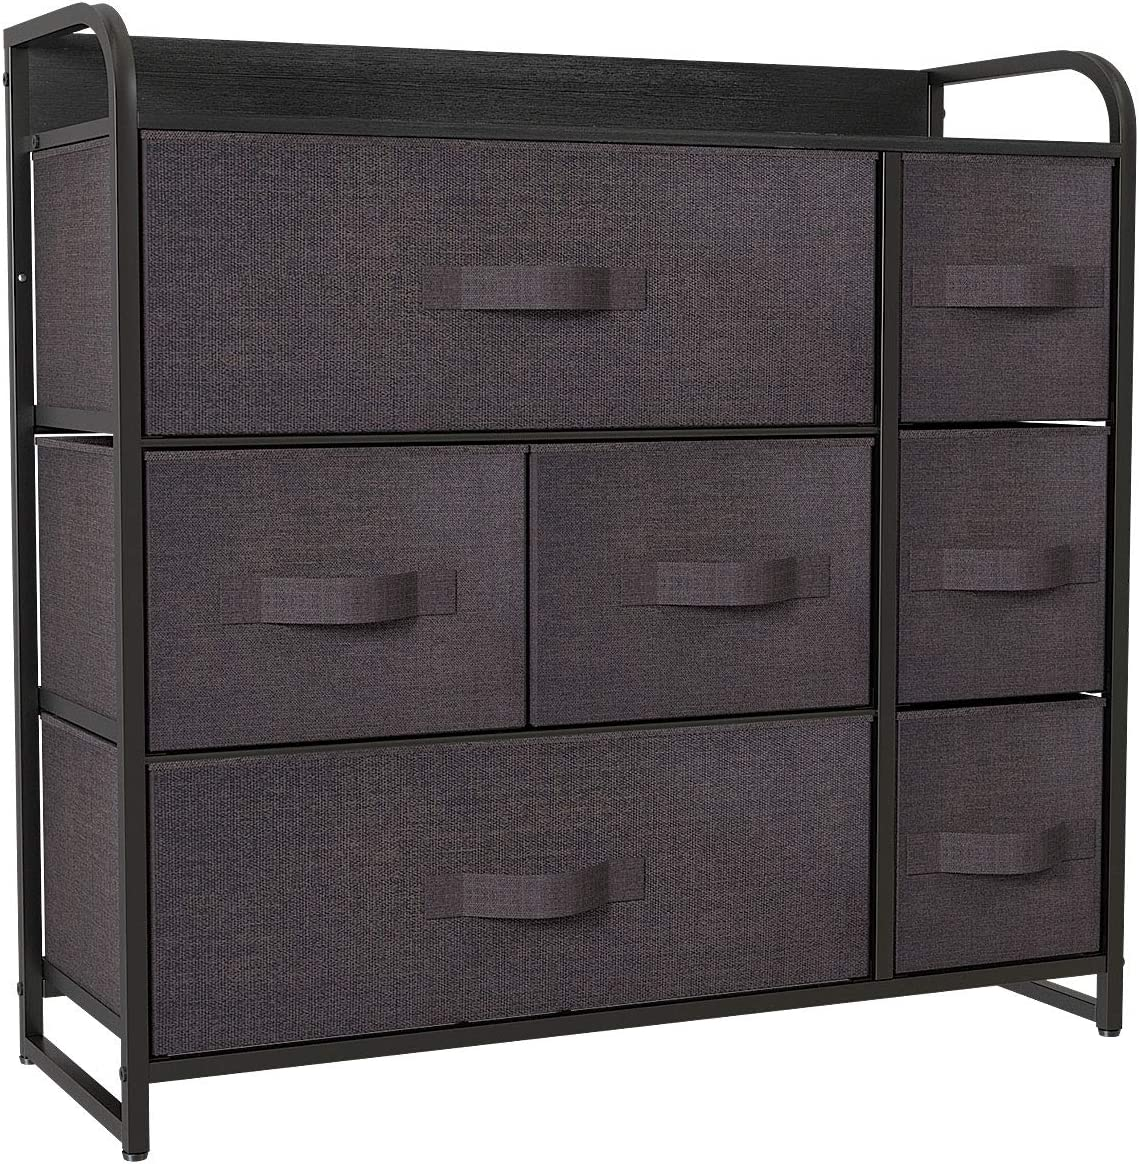 12. YITAHOME Fabric Dresser with 7-Drawers: